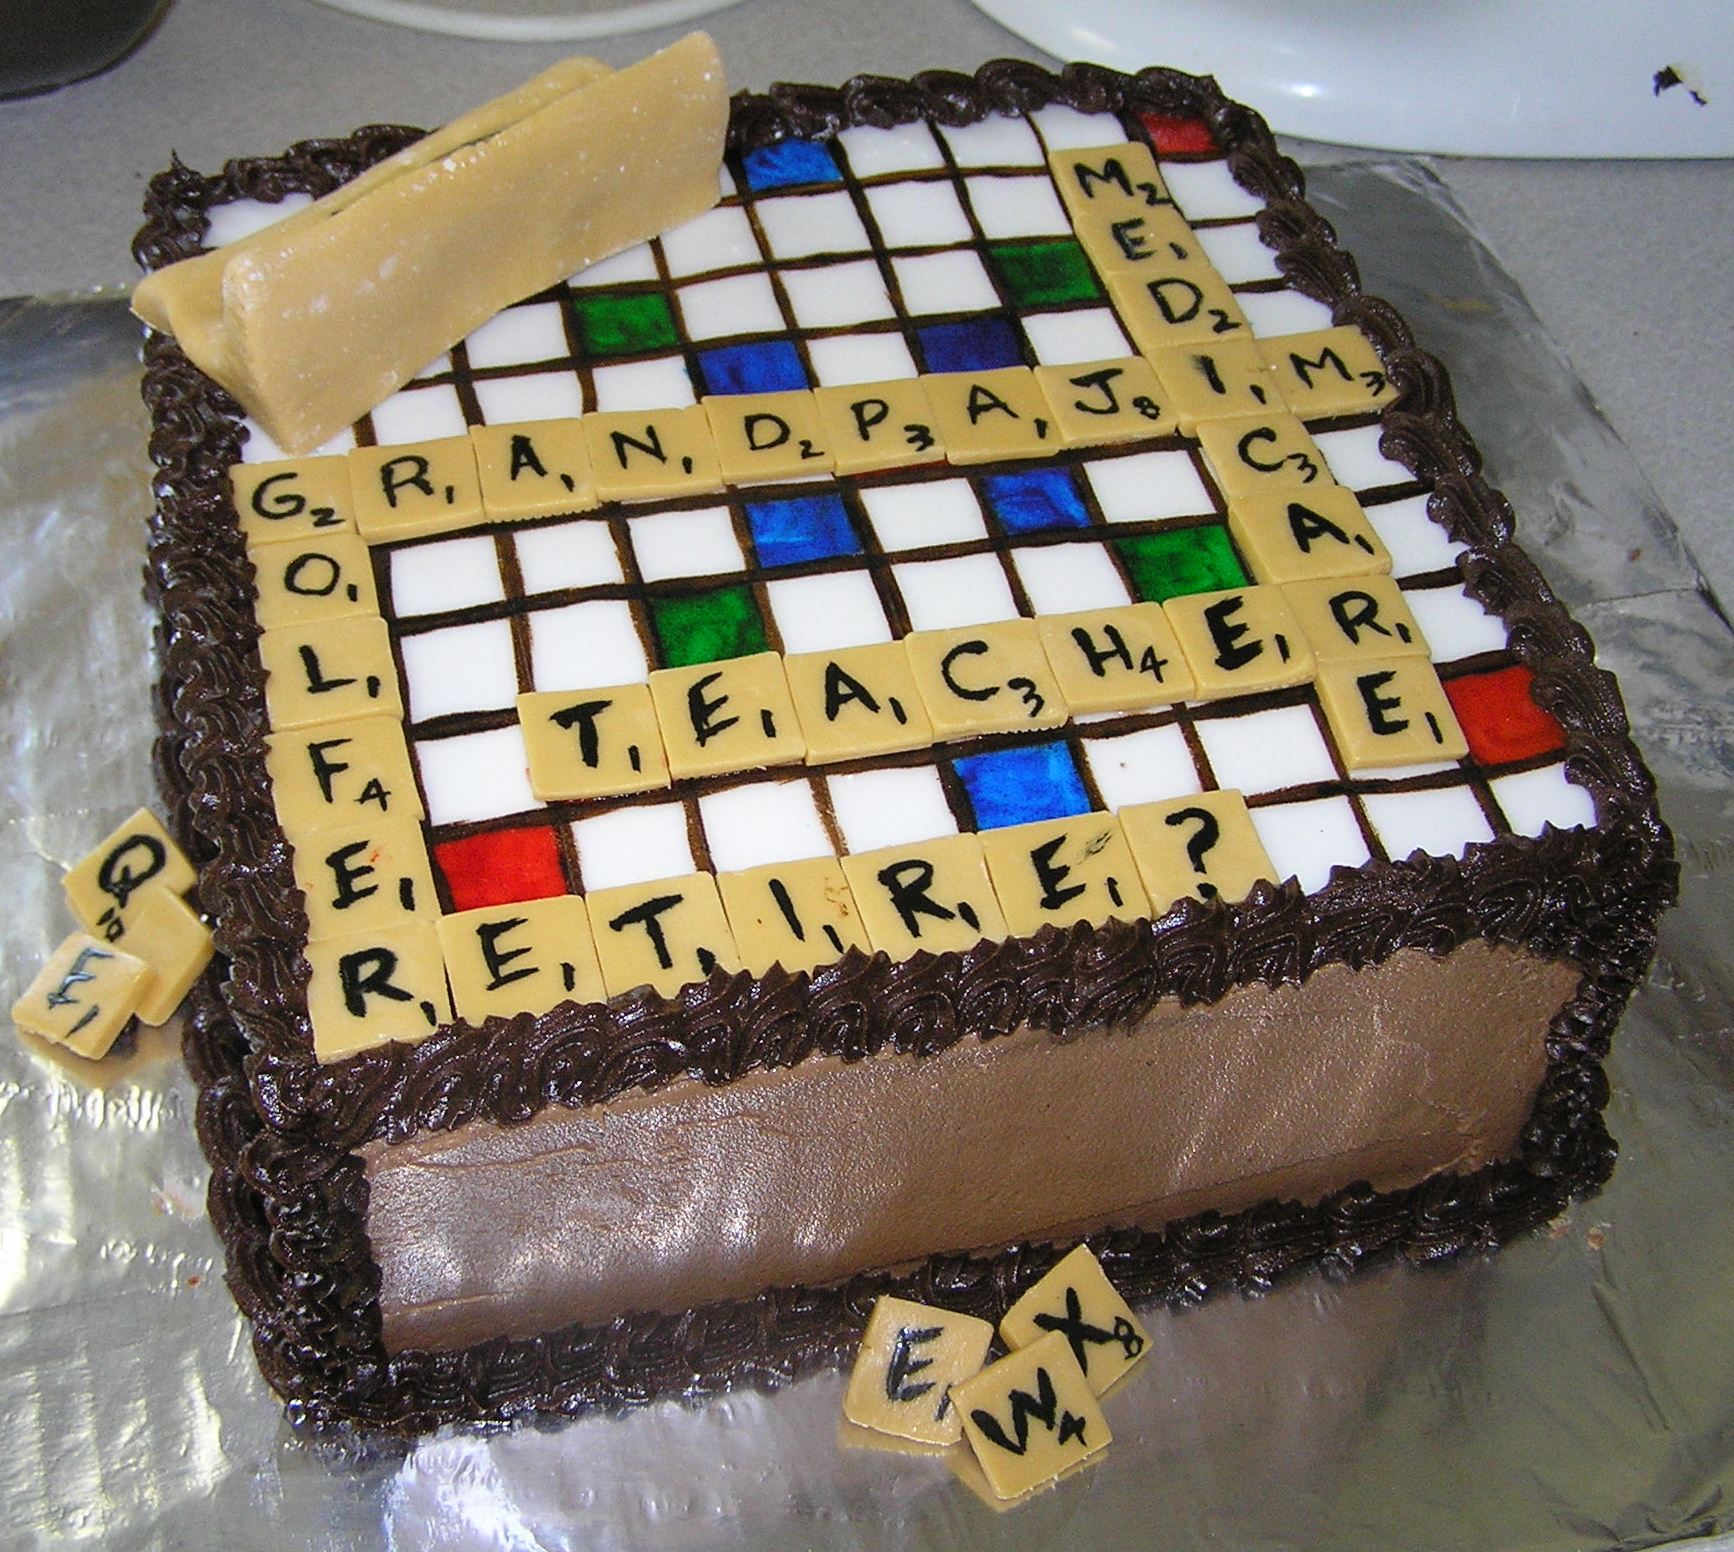 6) Scrabble Retirement:  The cake traveled to Nebraska to celebrate a retirement. And yes, I always check and make sure that there are enough letters to spell out the requested words. Otherwise, I ask for more words. Details matter.